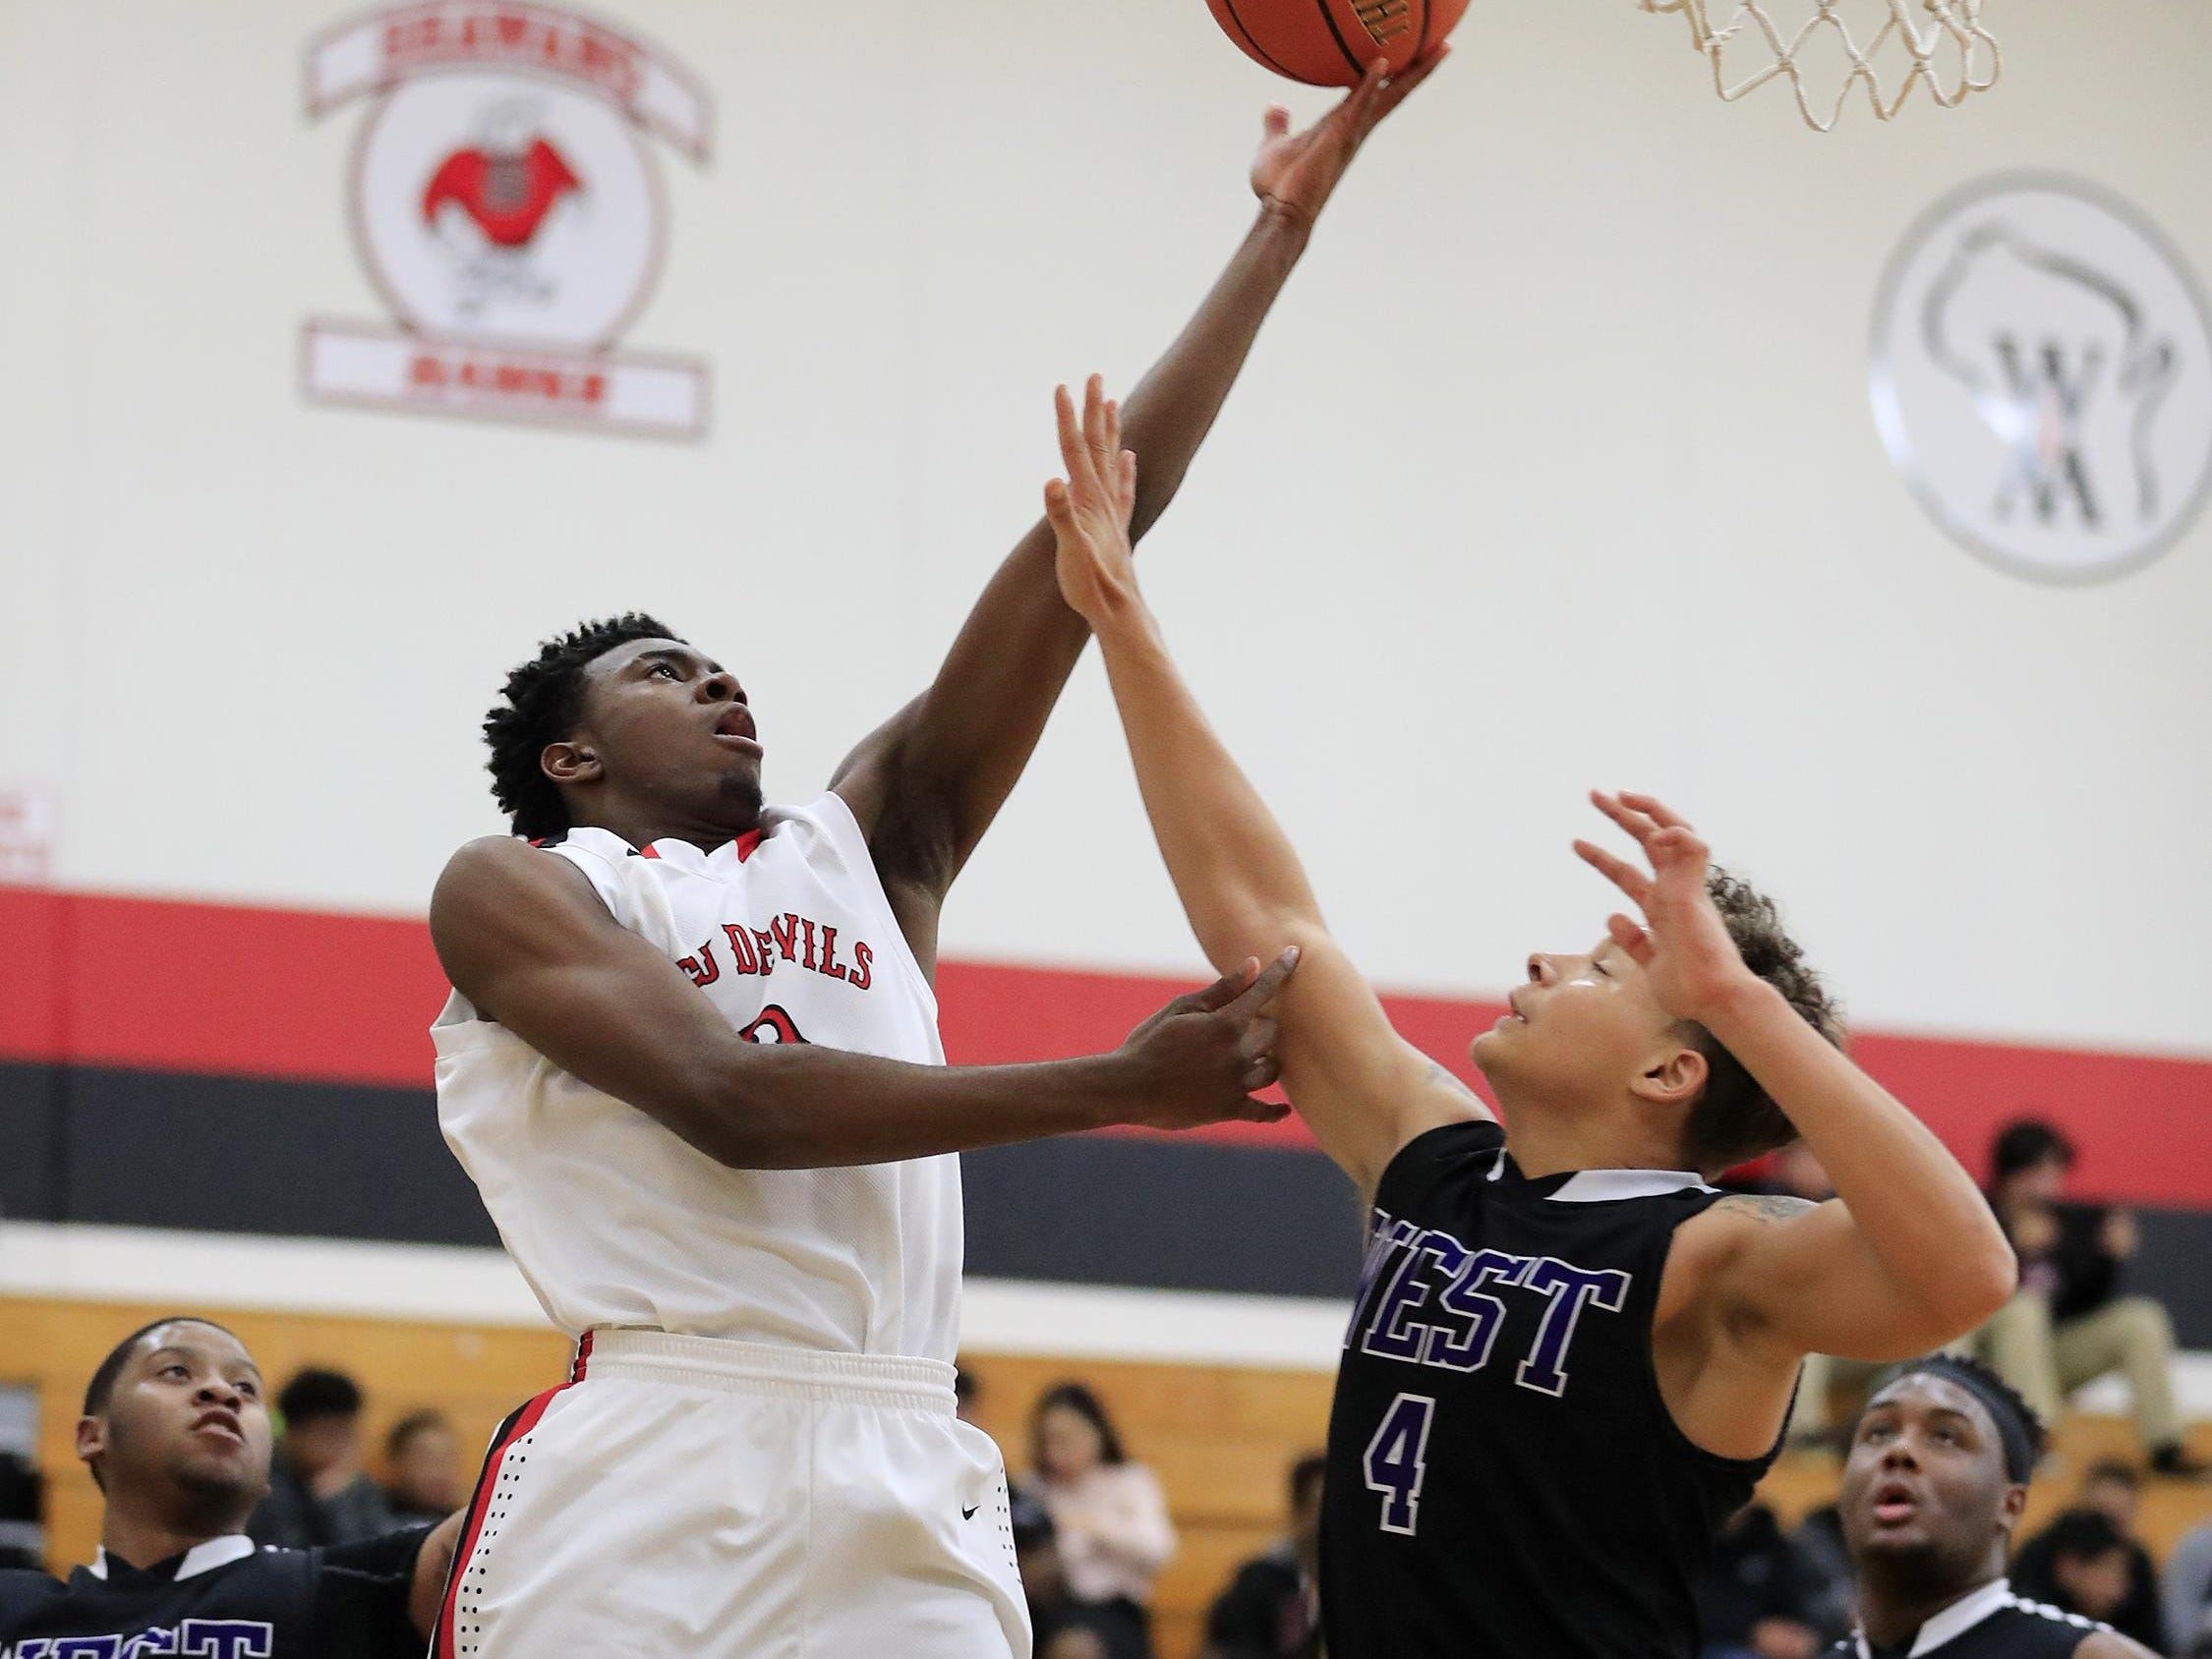 Green Bay East's Zack Crockett (2) scores a basket past Green Bay West's Brandon Dudley (4) in a Bay Conference boys basketball game on Jan. 3. Crockett averaged 18.1 points per game to finish as the Bay's second-leading scorer this season.